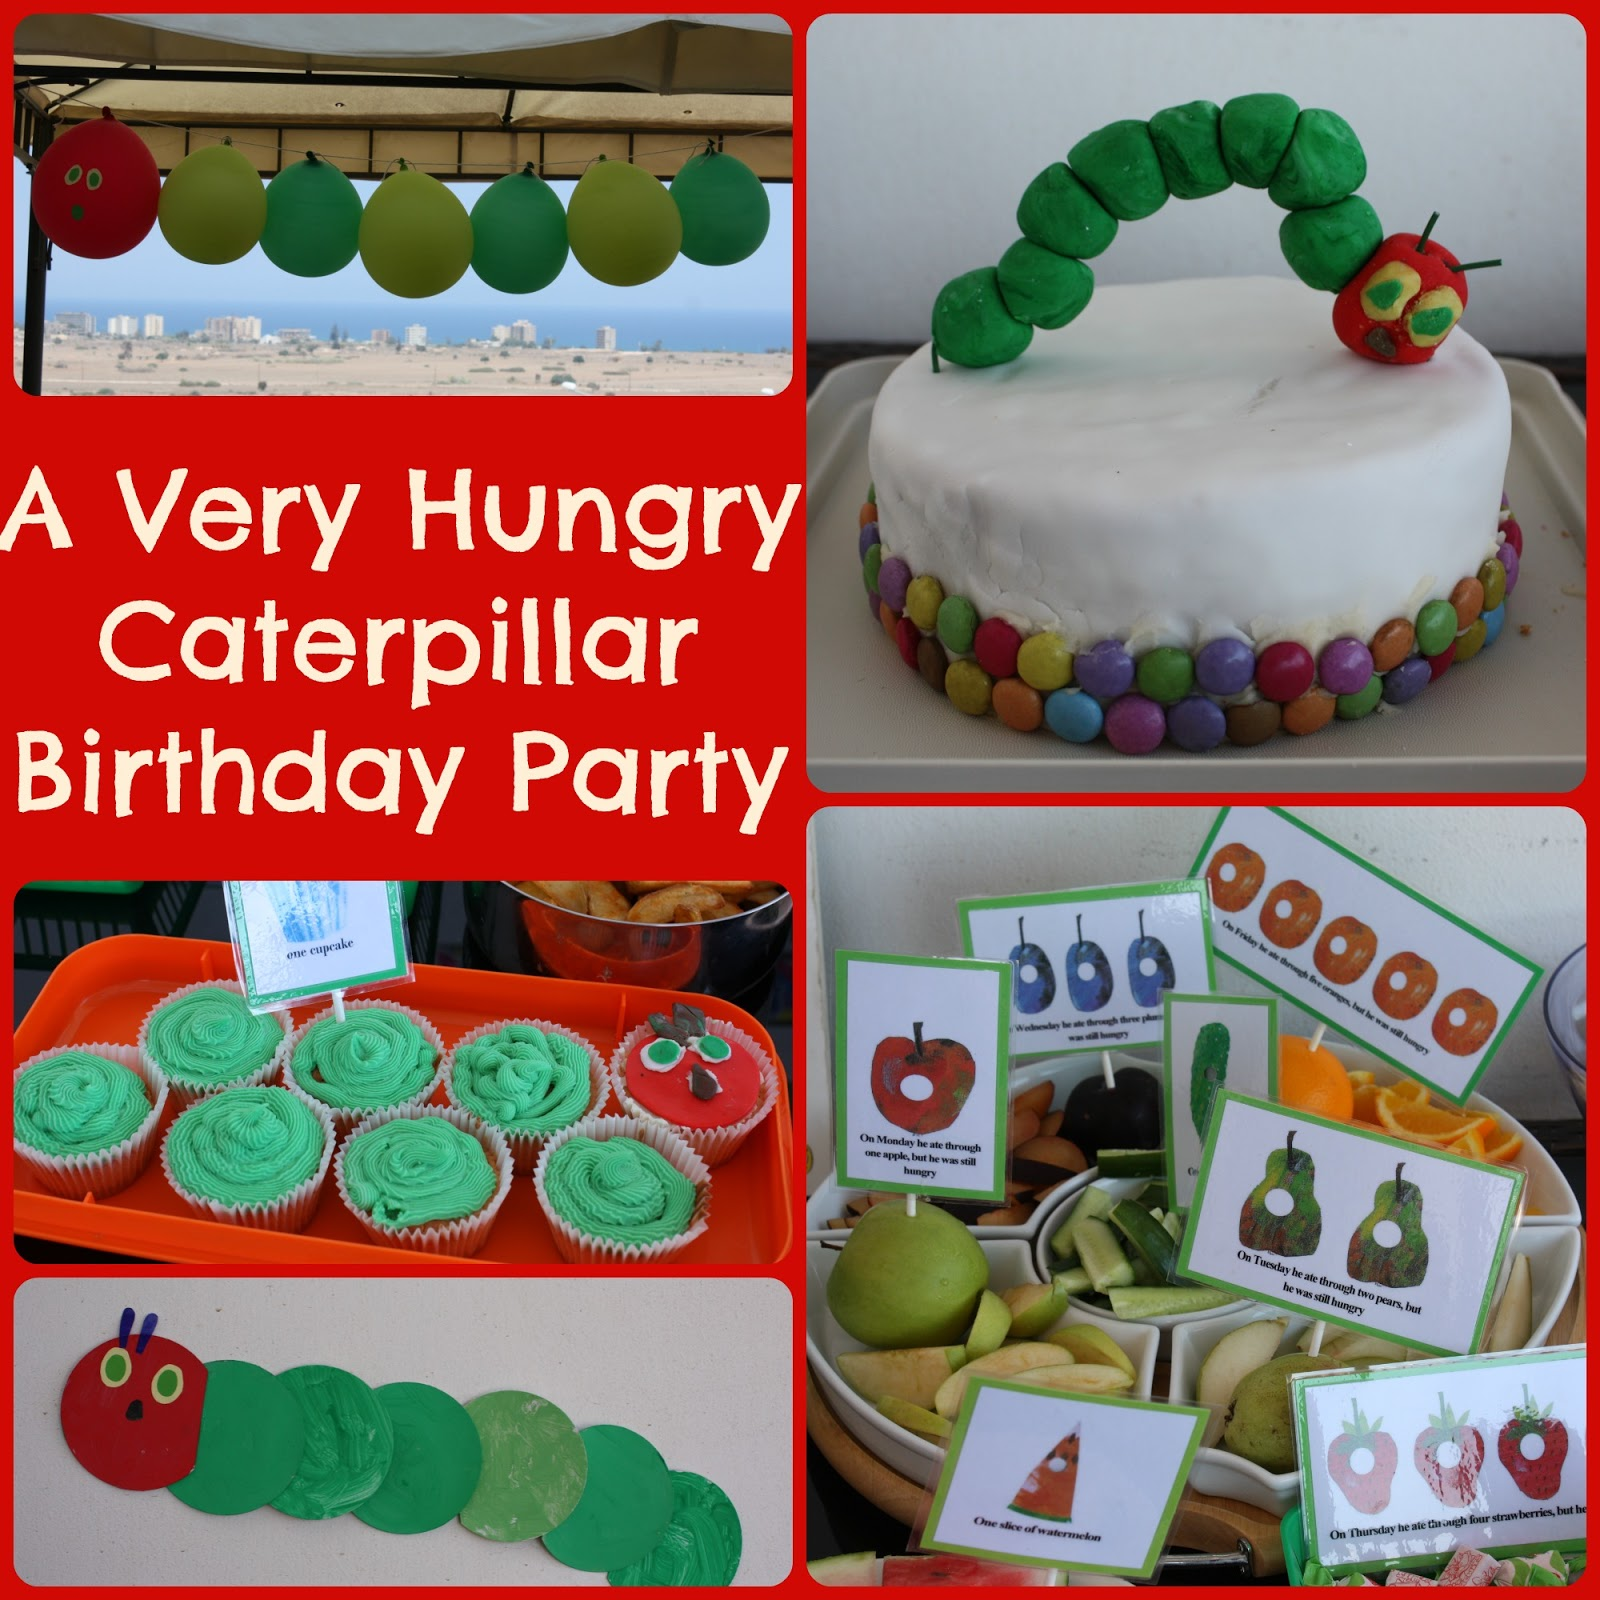 A Matter Of Choice: A 'Very Hungry Caterpillar' Party